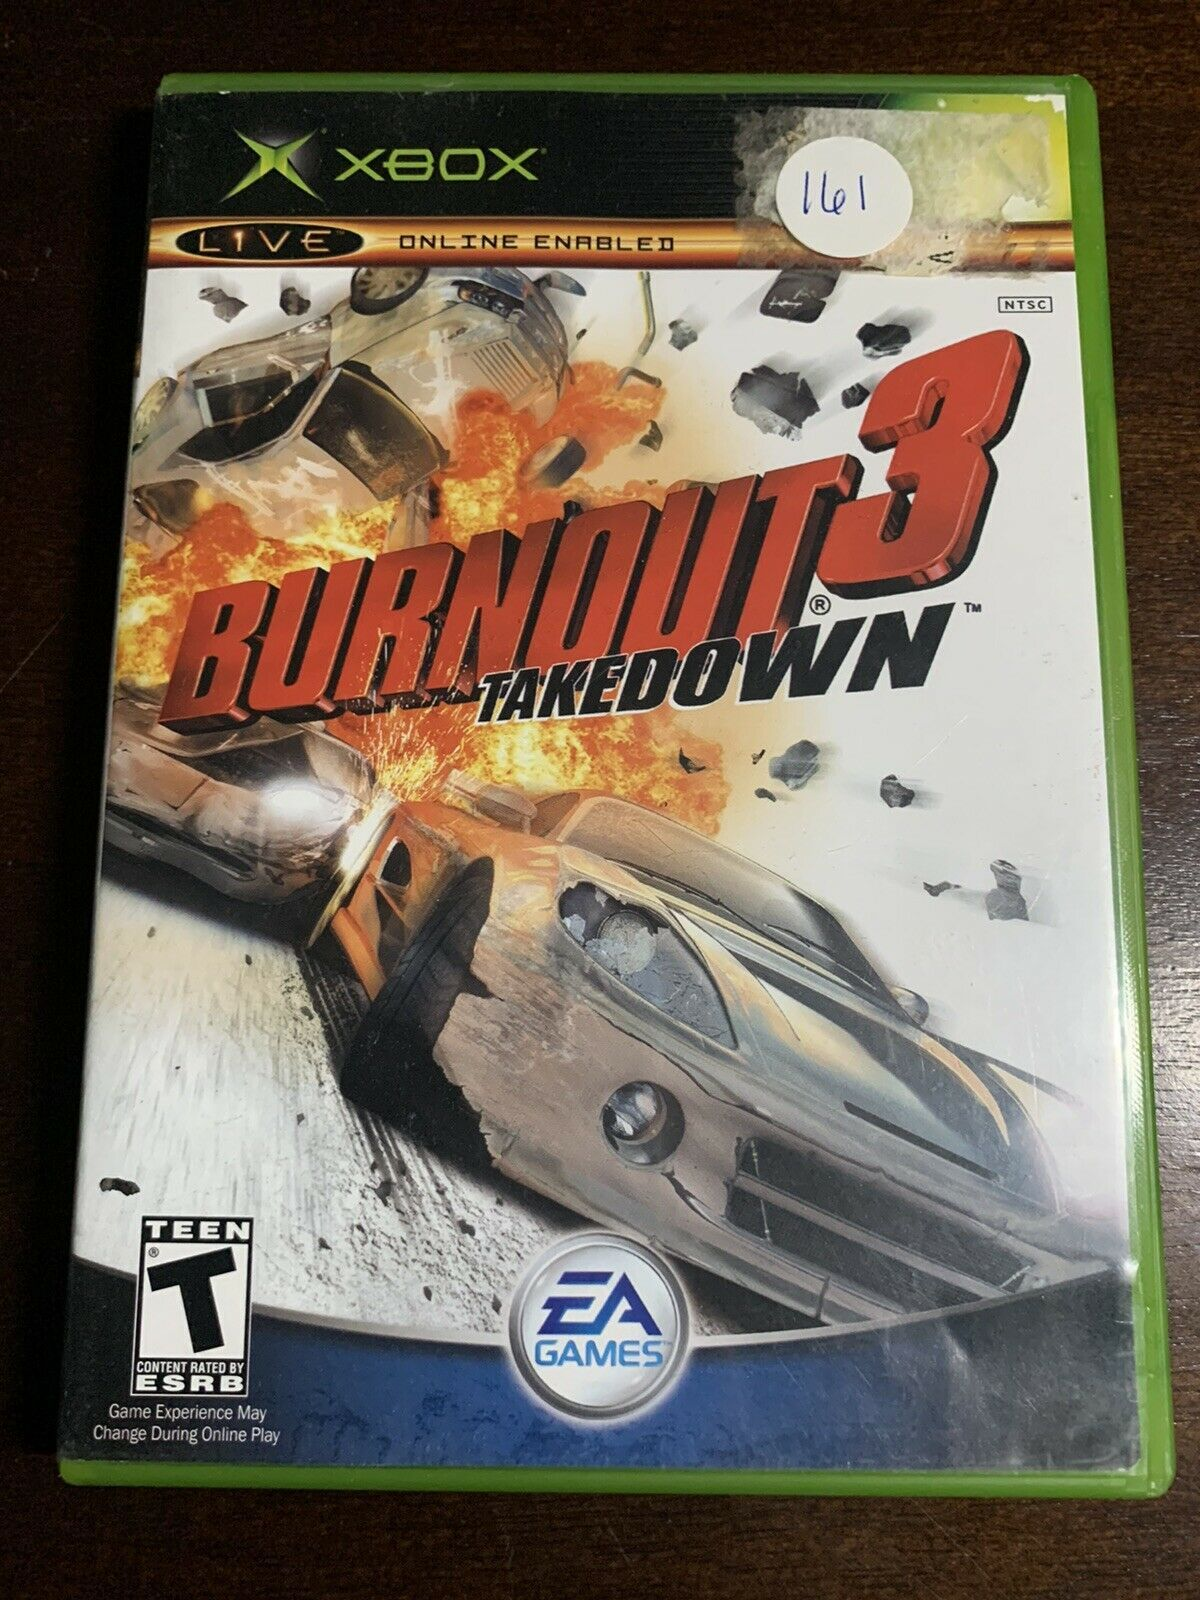 Primary image for Burnout 3: Takedown (Microsoft Xbox, 2004) Video Game + Case